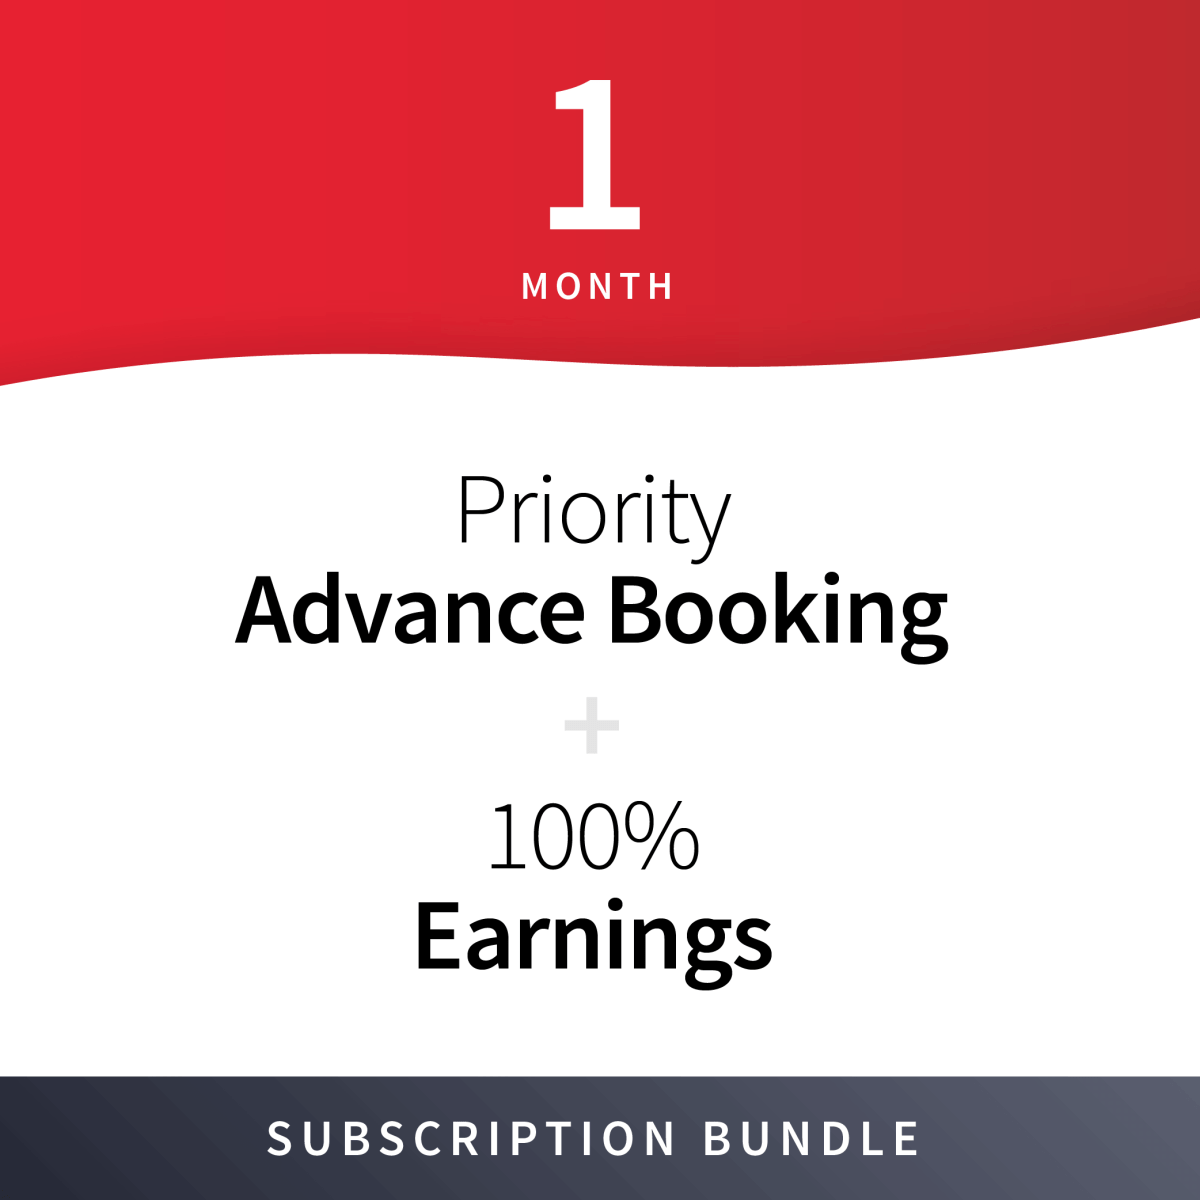 100% Earnings + Priority Advance Booking Subscription Bundle - 1 Month 4